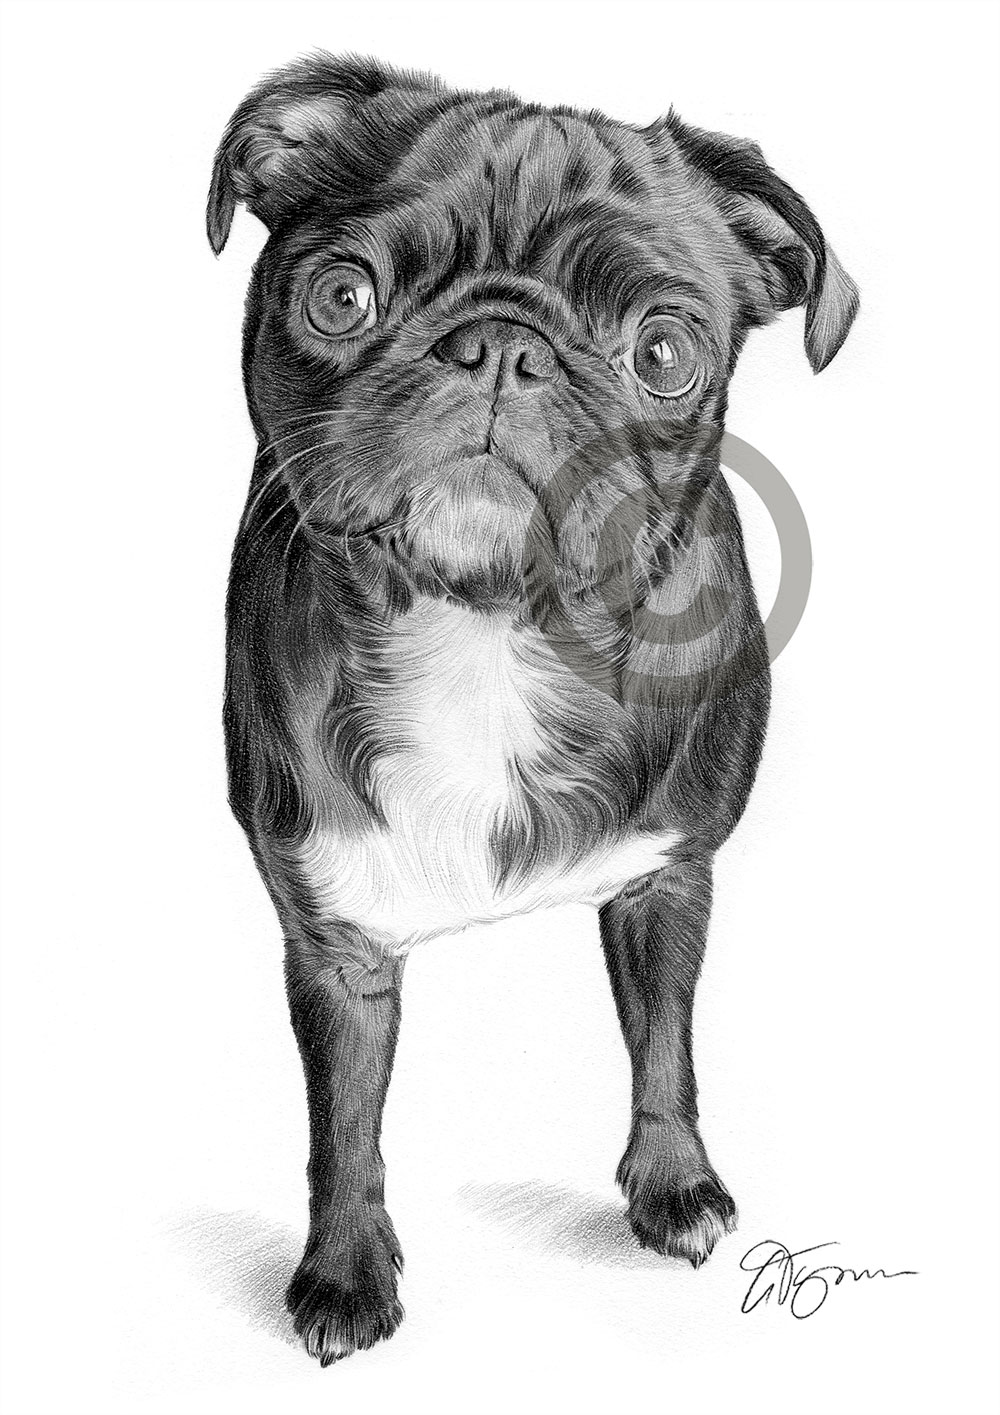 Black Pug pencil drawing by artist Gary Tymon